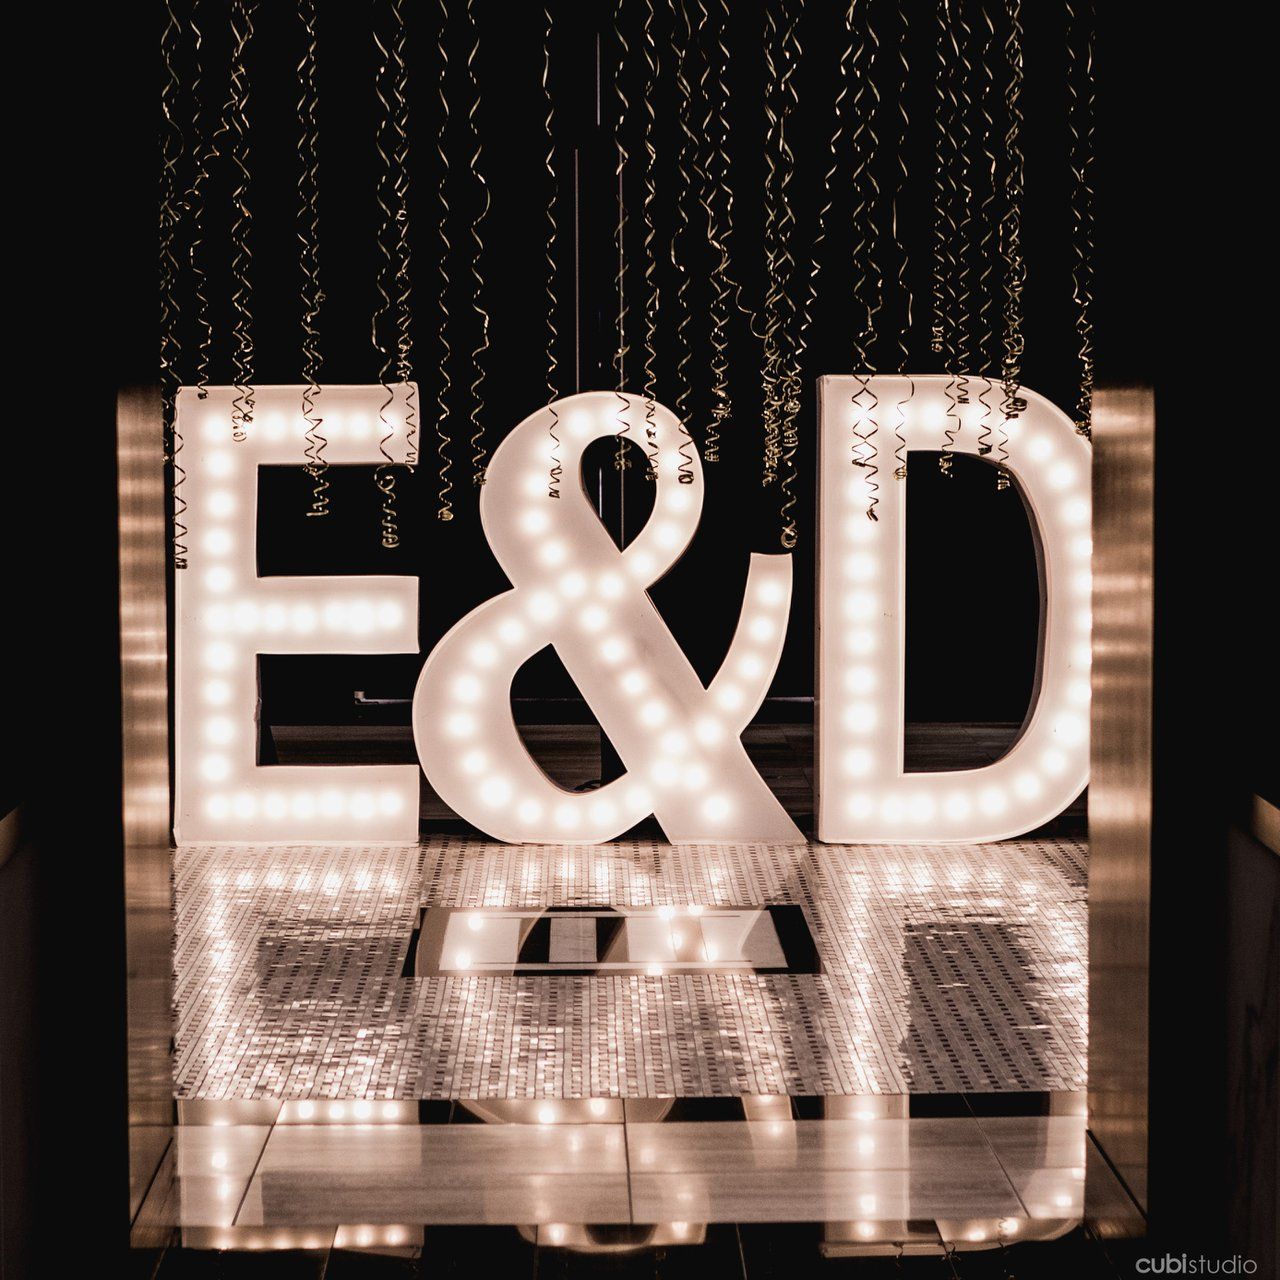 Dahlia & Edar's Wedding photo CubiStudio-DaliaEder-W-1055694.jpg